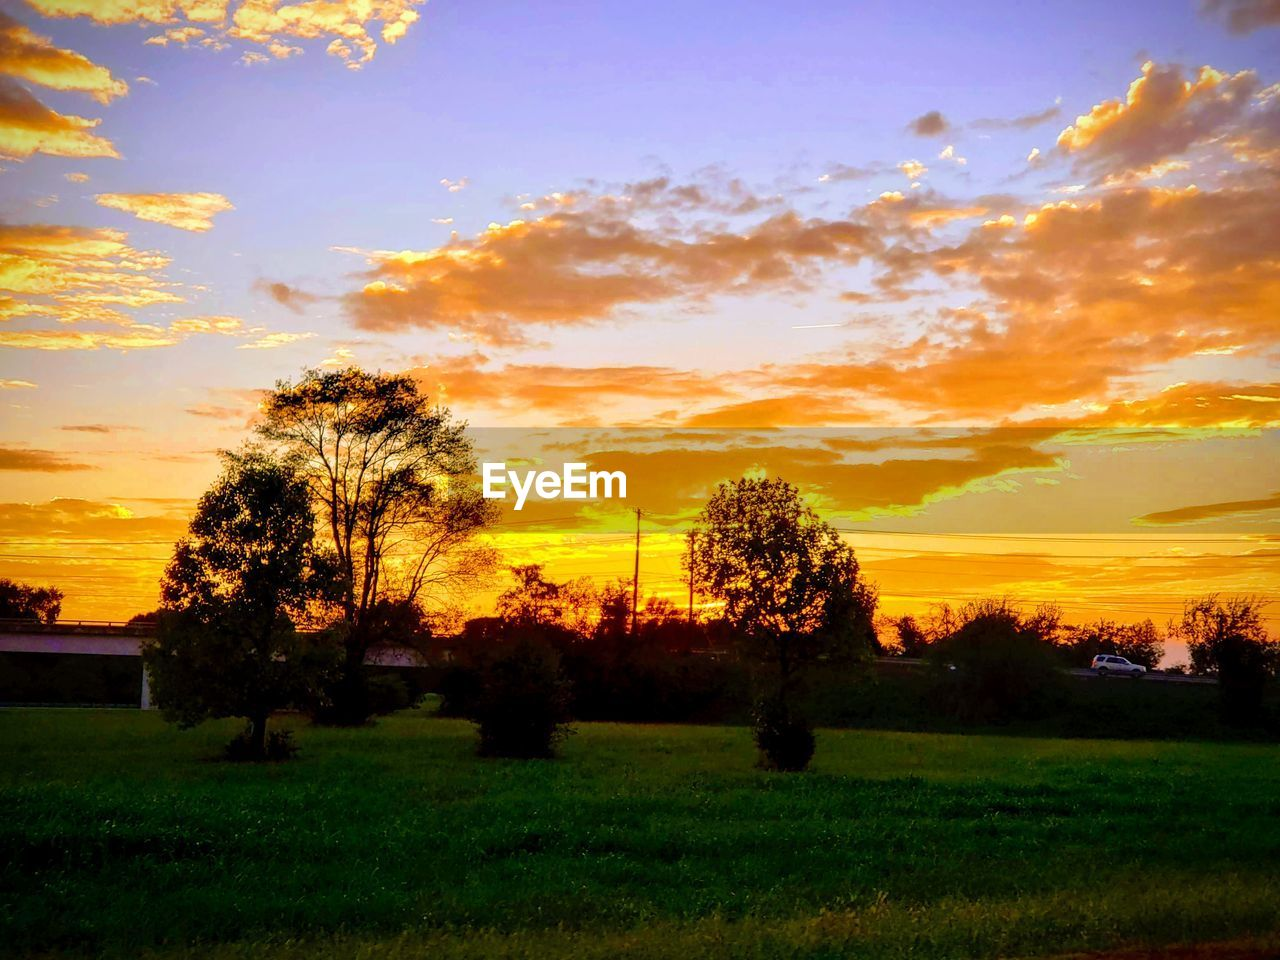 sunset, sky, plant, beauty in nature, scenics - nature, tree, tranquil scene, cloud - sky, orange color, field, landscape, tranquility, environment, land, grass, nature, no people, growth, idyllic, non-urban scene, outdoors